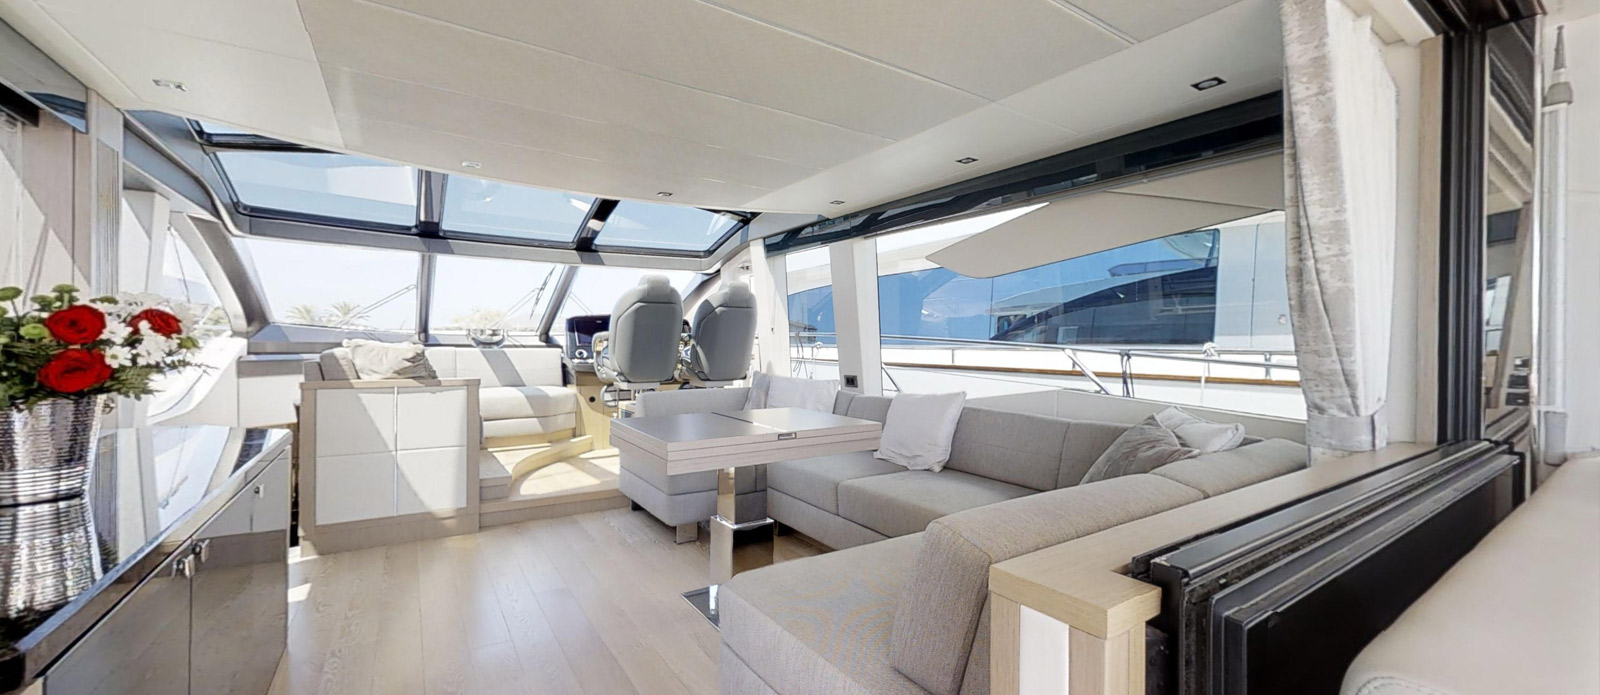 Sunseeker 74 Predator - Saloon-Alternative-Angle